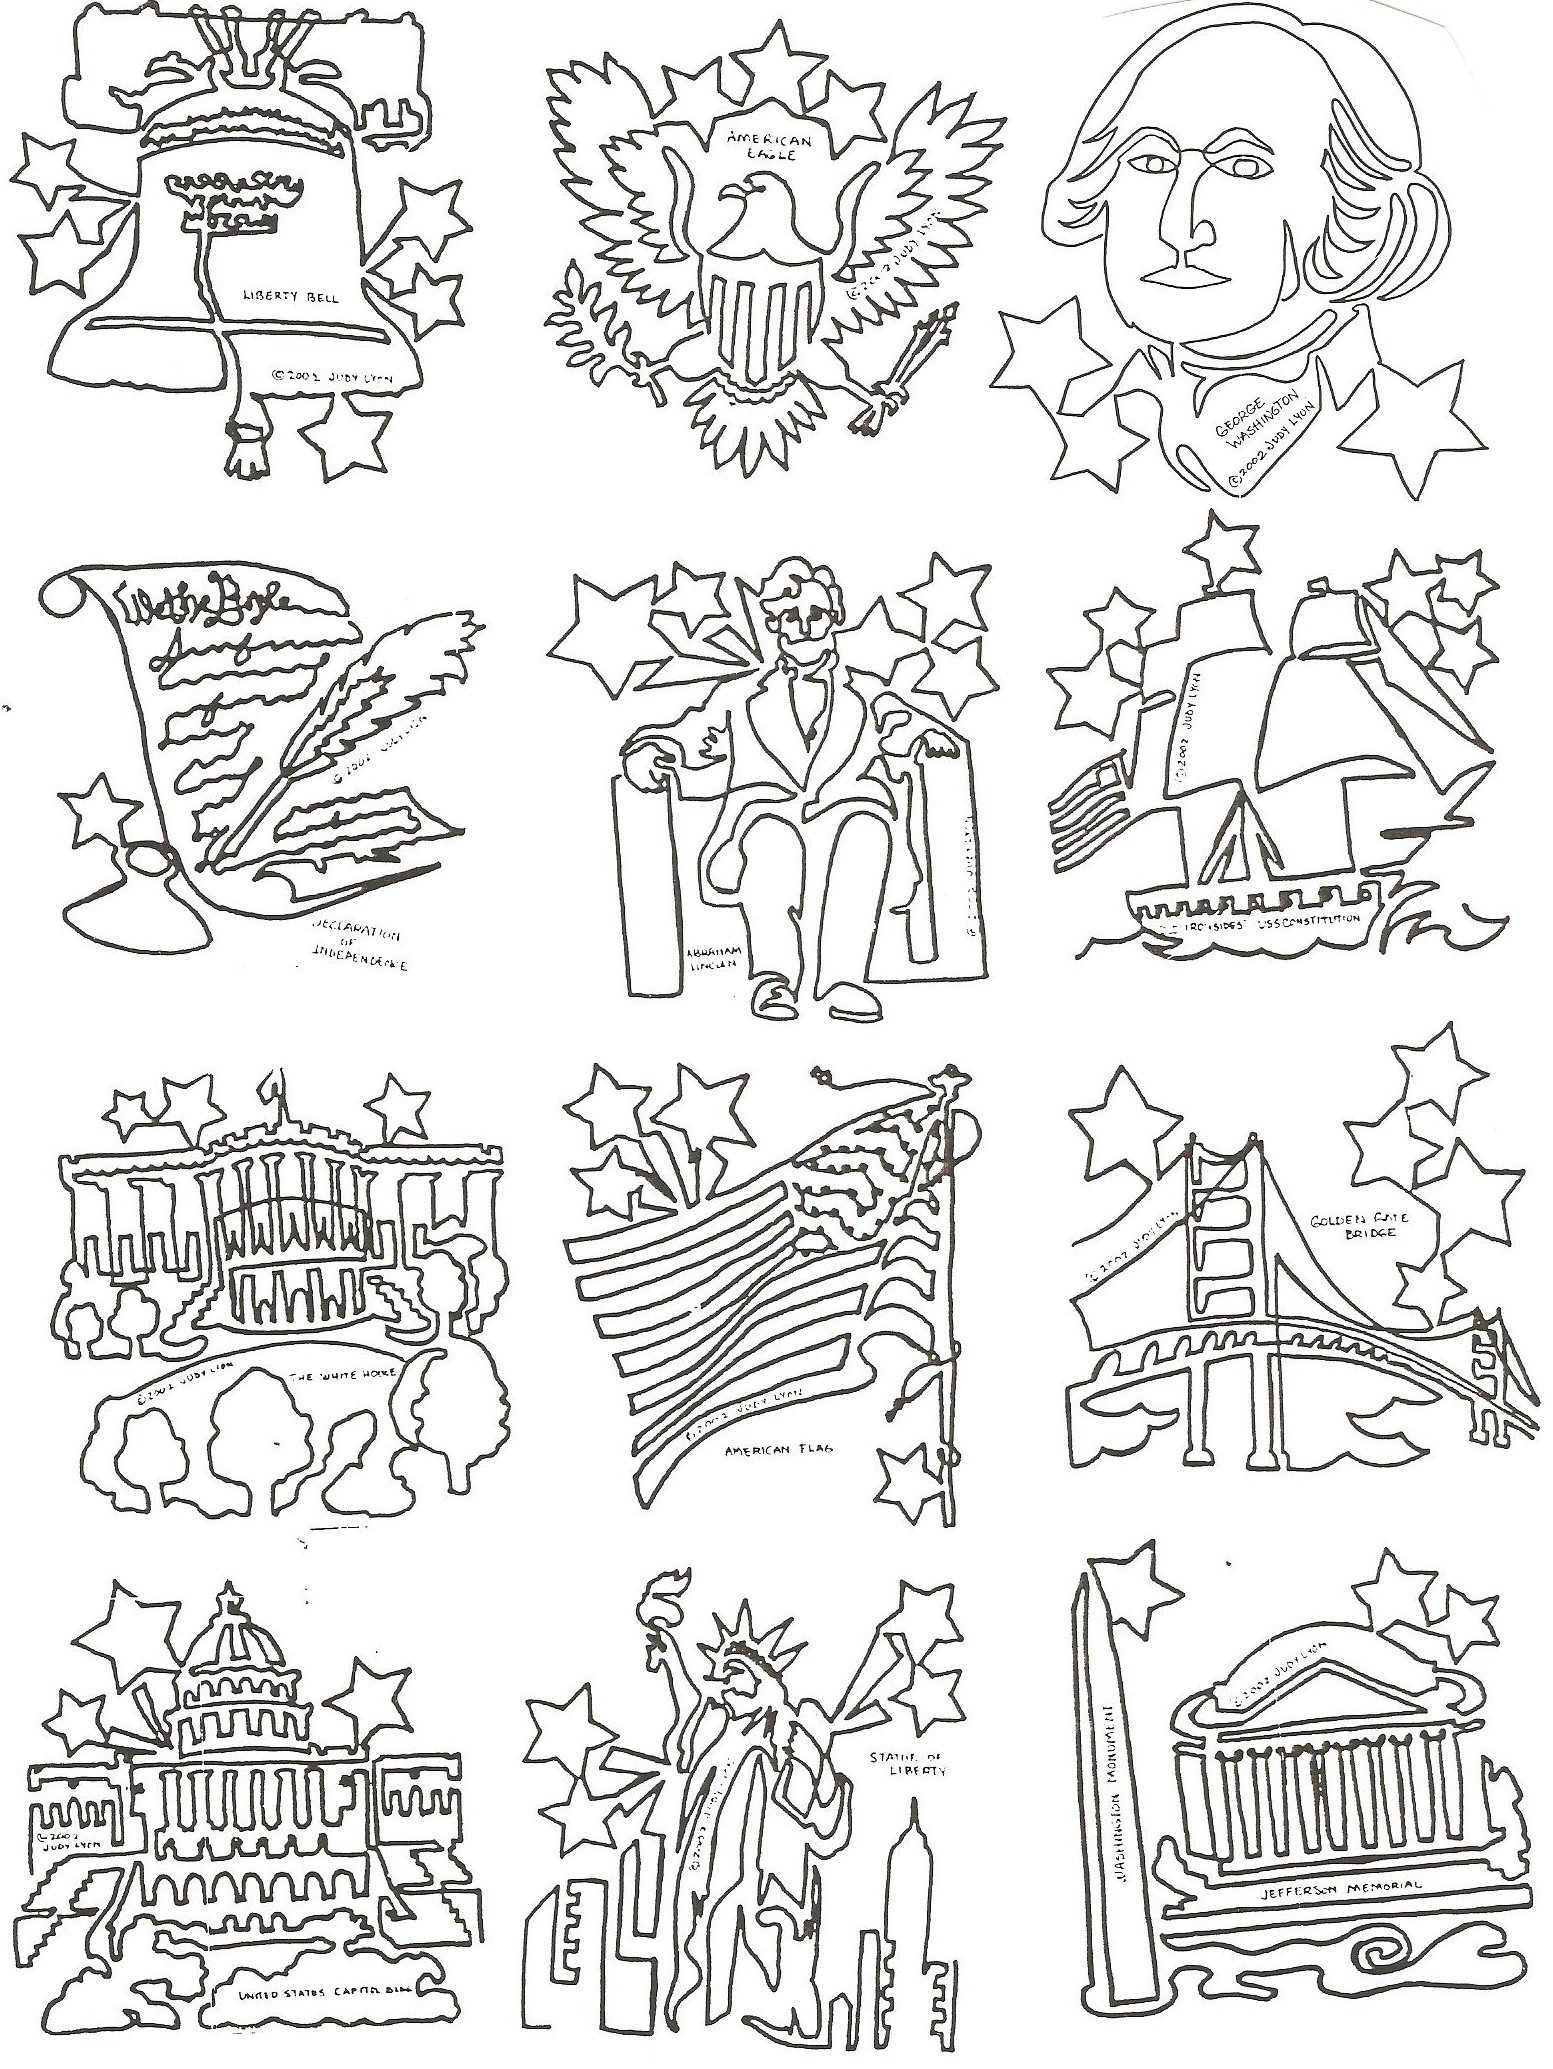 Continuous Line Quilting Patterns Product categories MeadowLyon Designs Page 2